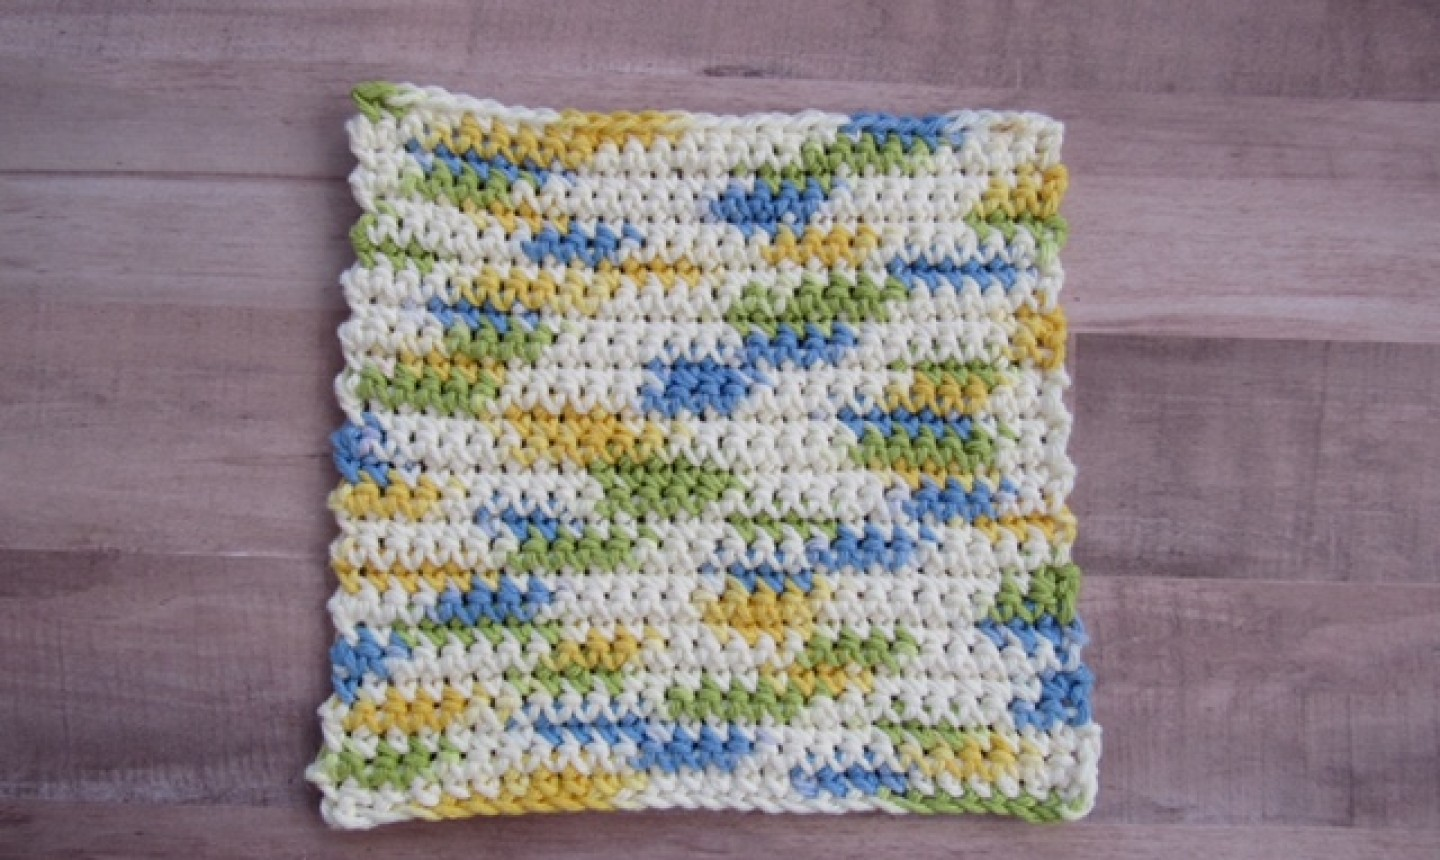 Square of completed crochet